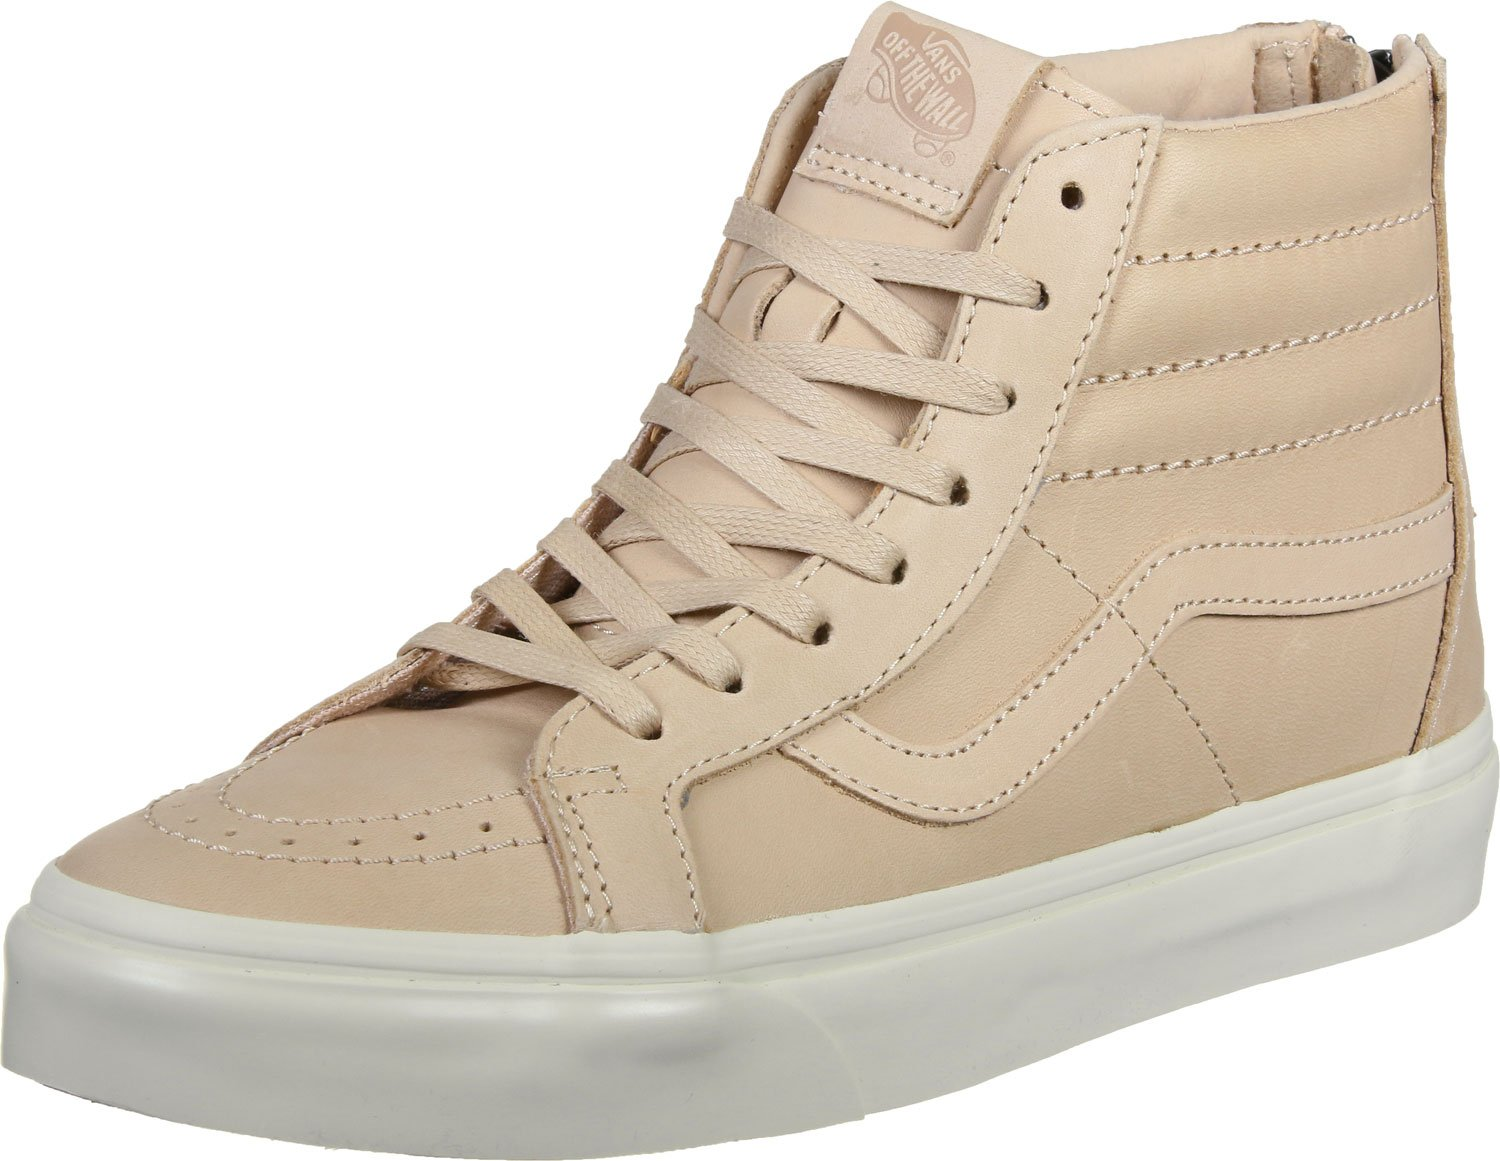 Vans Sk8-Hi Unisex Casual High-Top Skate Shoes, Comfortable and Durable in Signature Waffle Rubber Sole B01M758PUT 11.5 M US Women / 10 M US Men|Veggie Tan